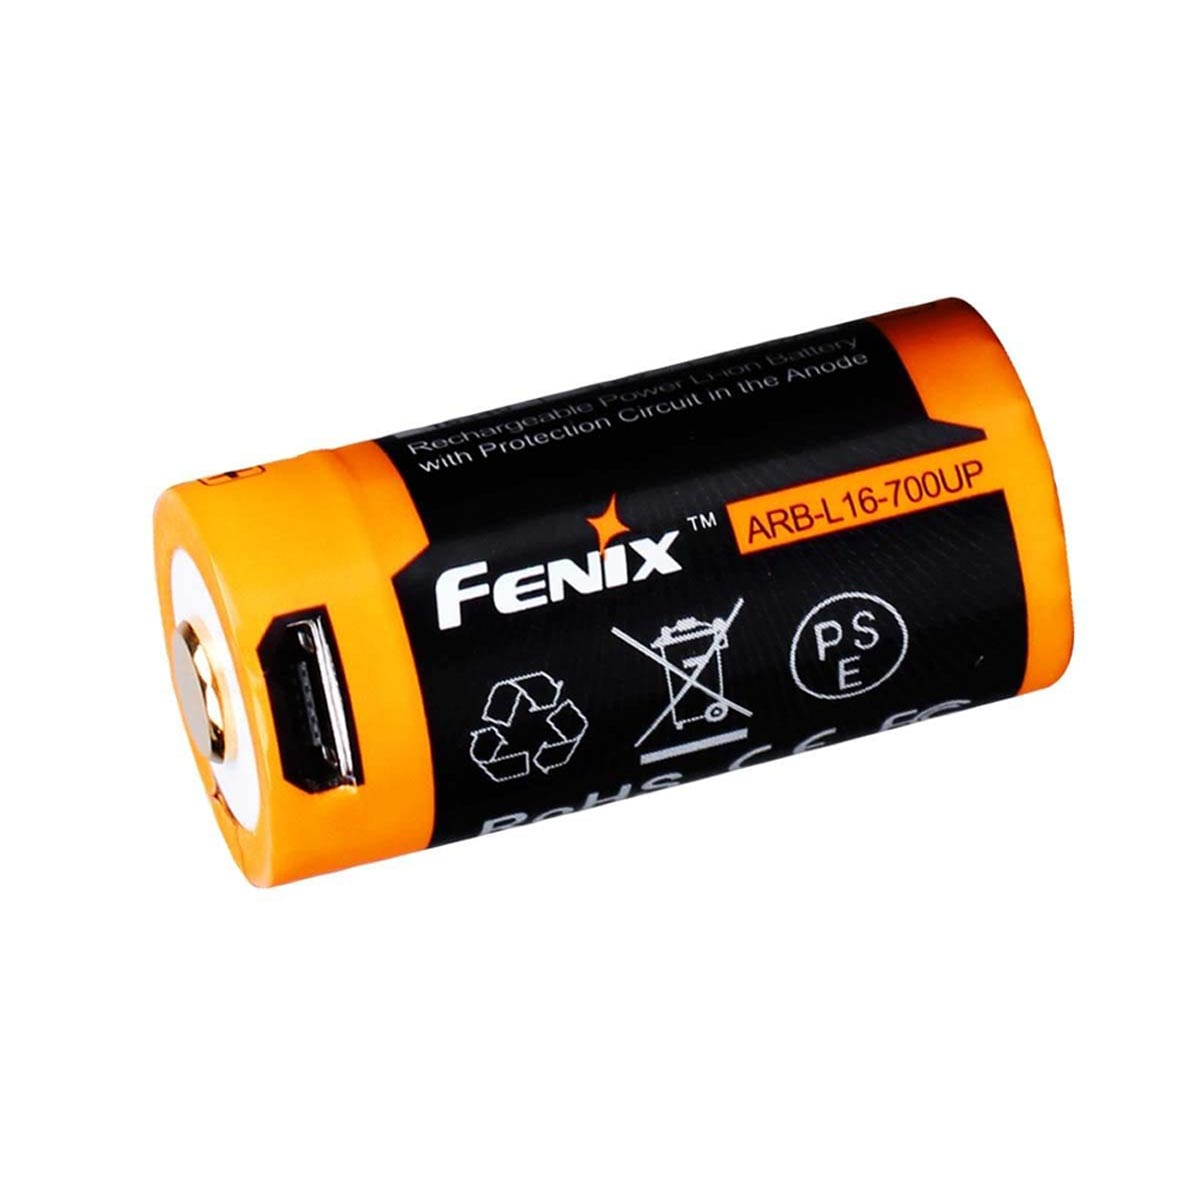 Fenix 16340 Li-ion 700mAh Rechargeable Battery with Built-In USB Charging Port